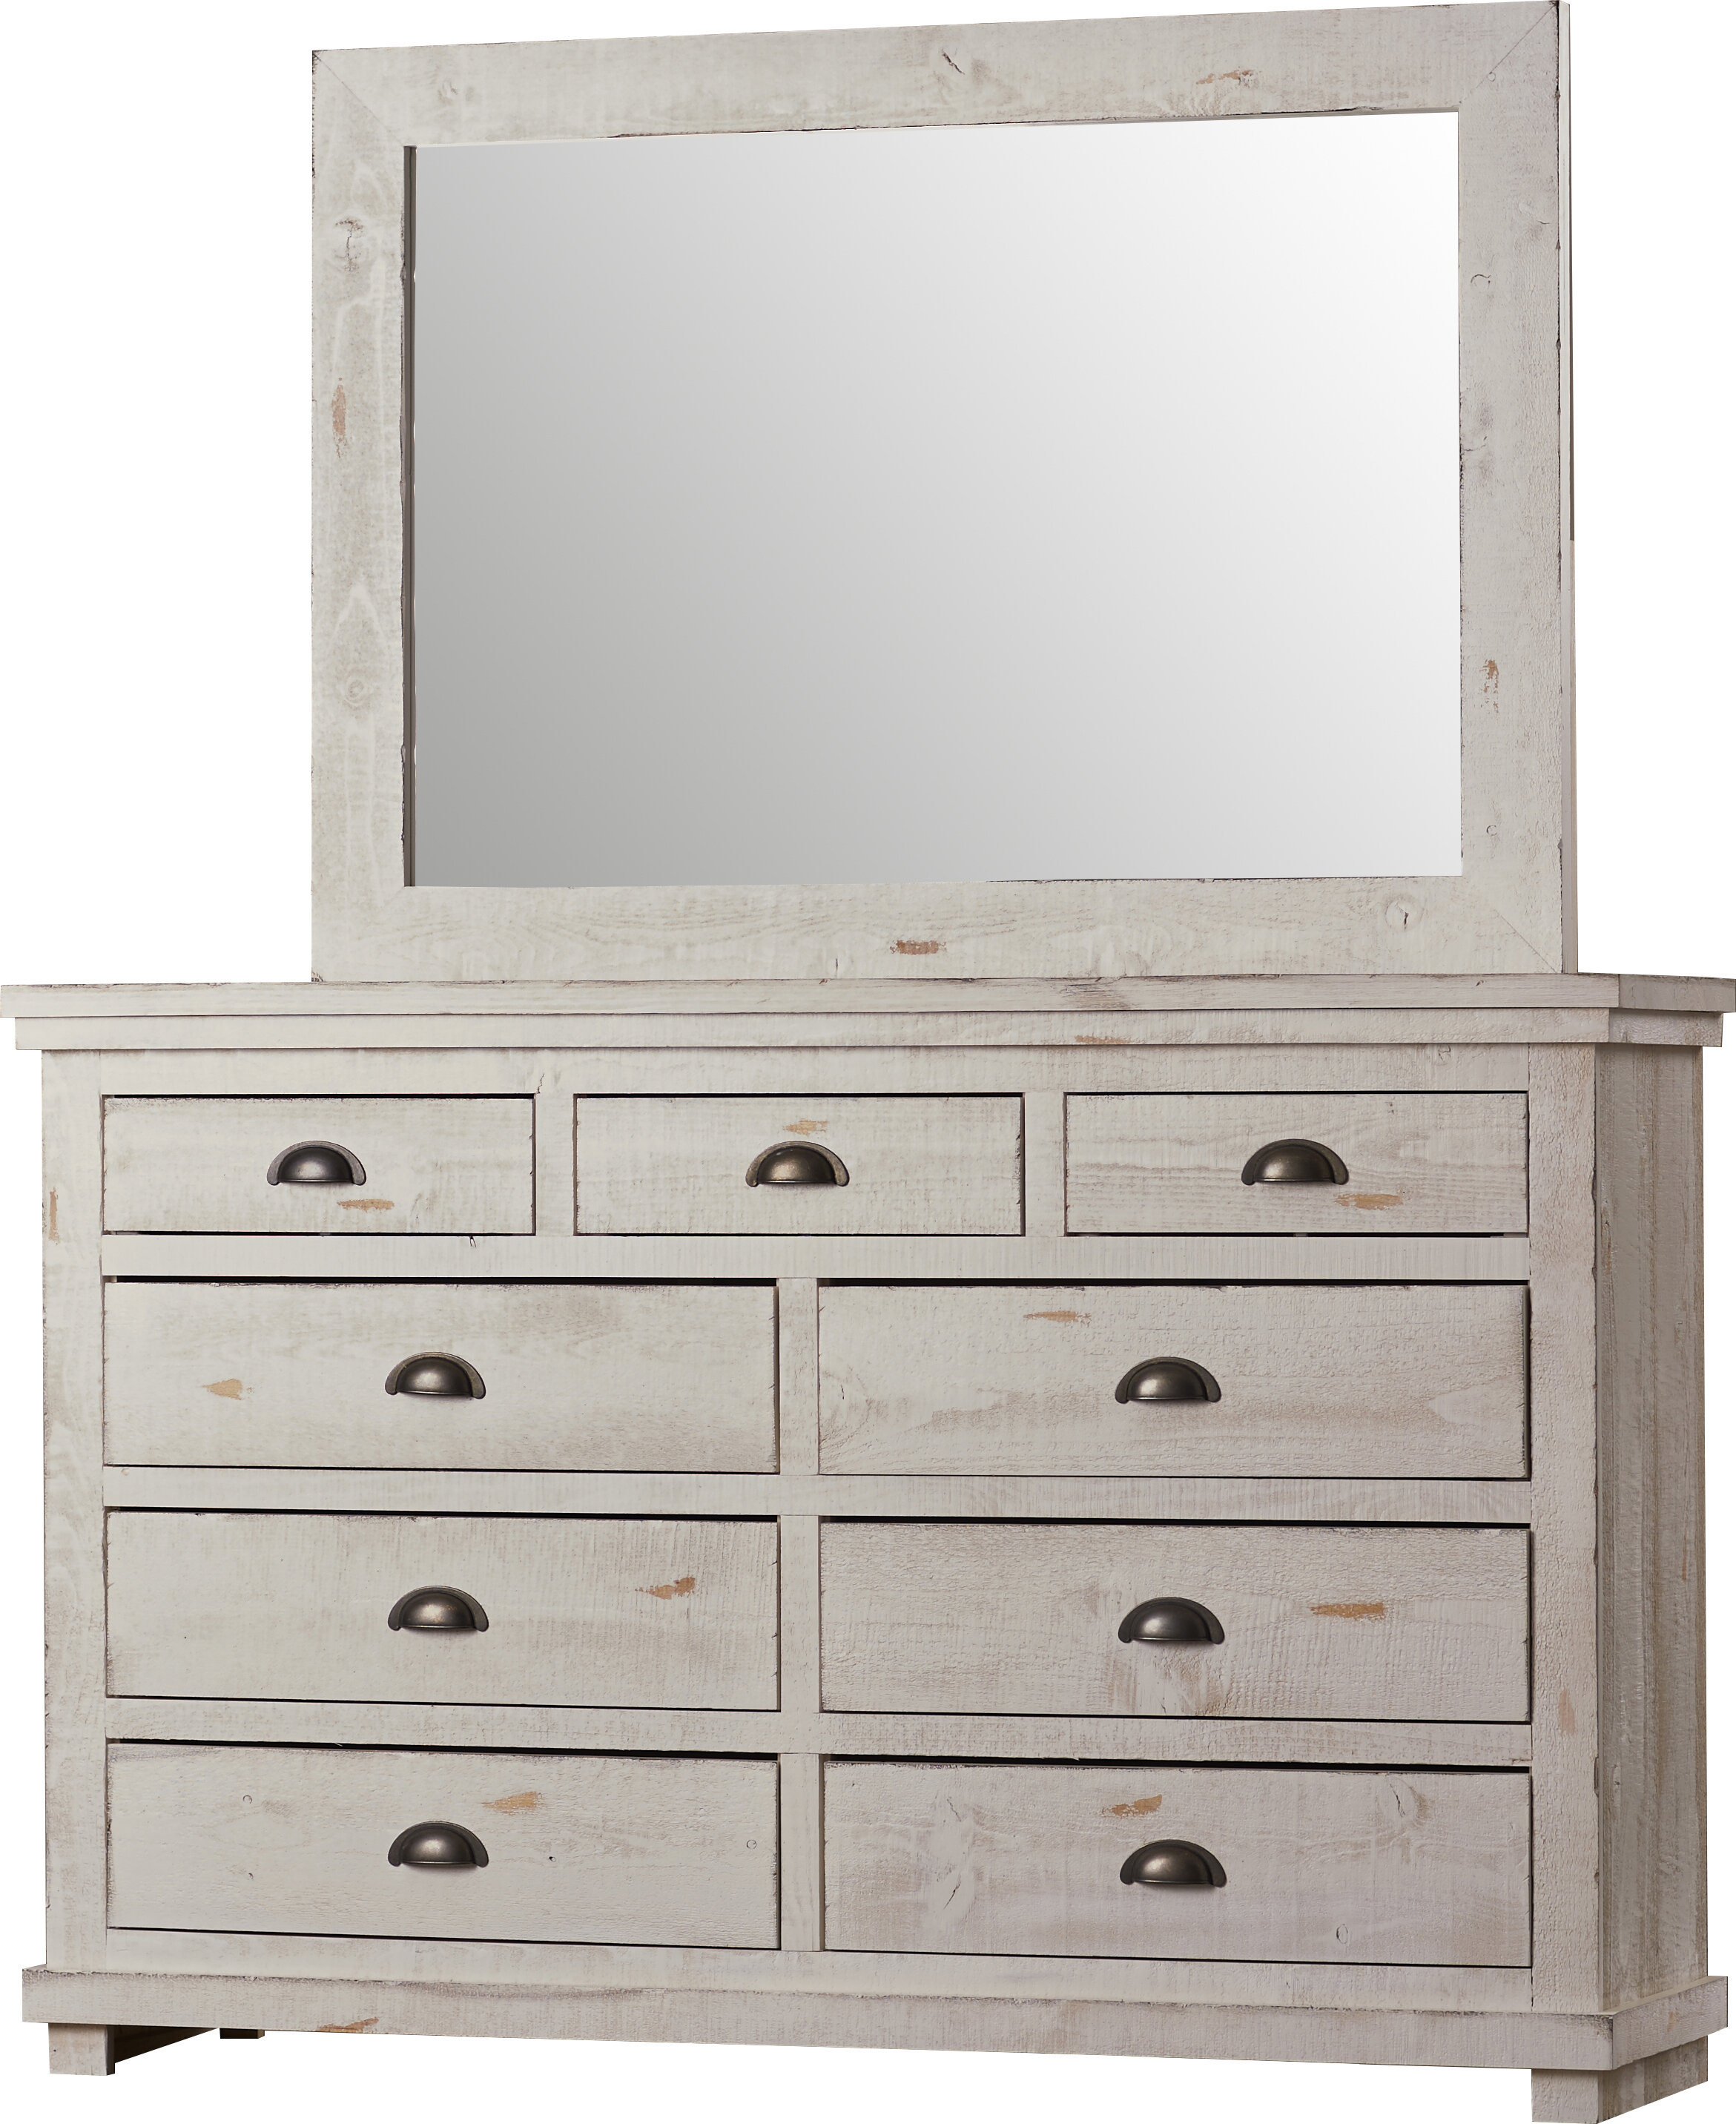 how lightweight paint solid black to wood dresser image of